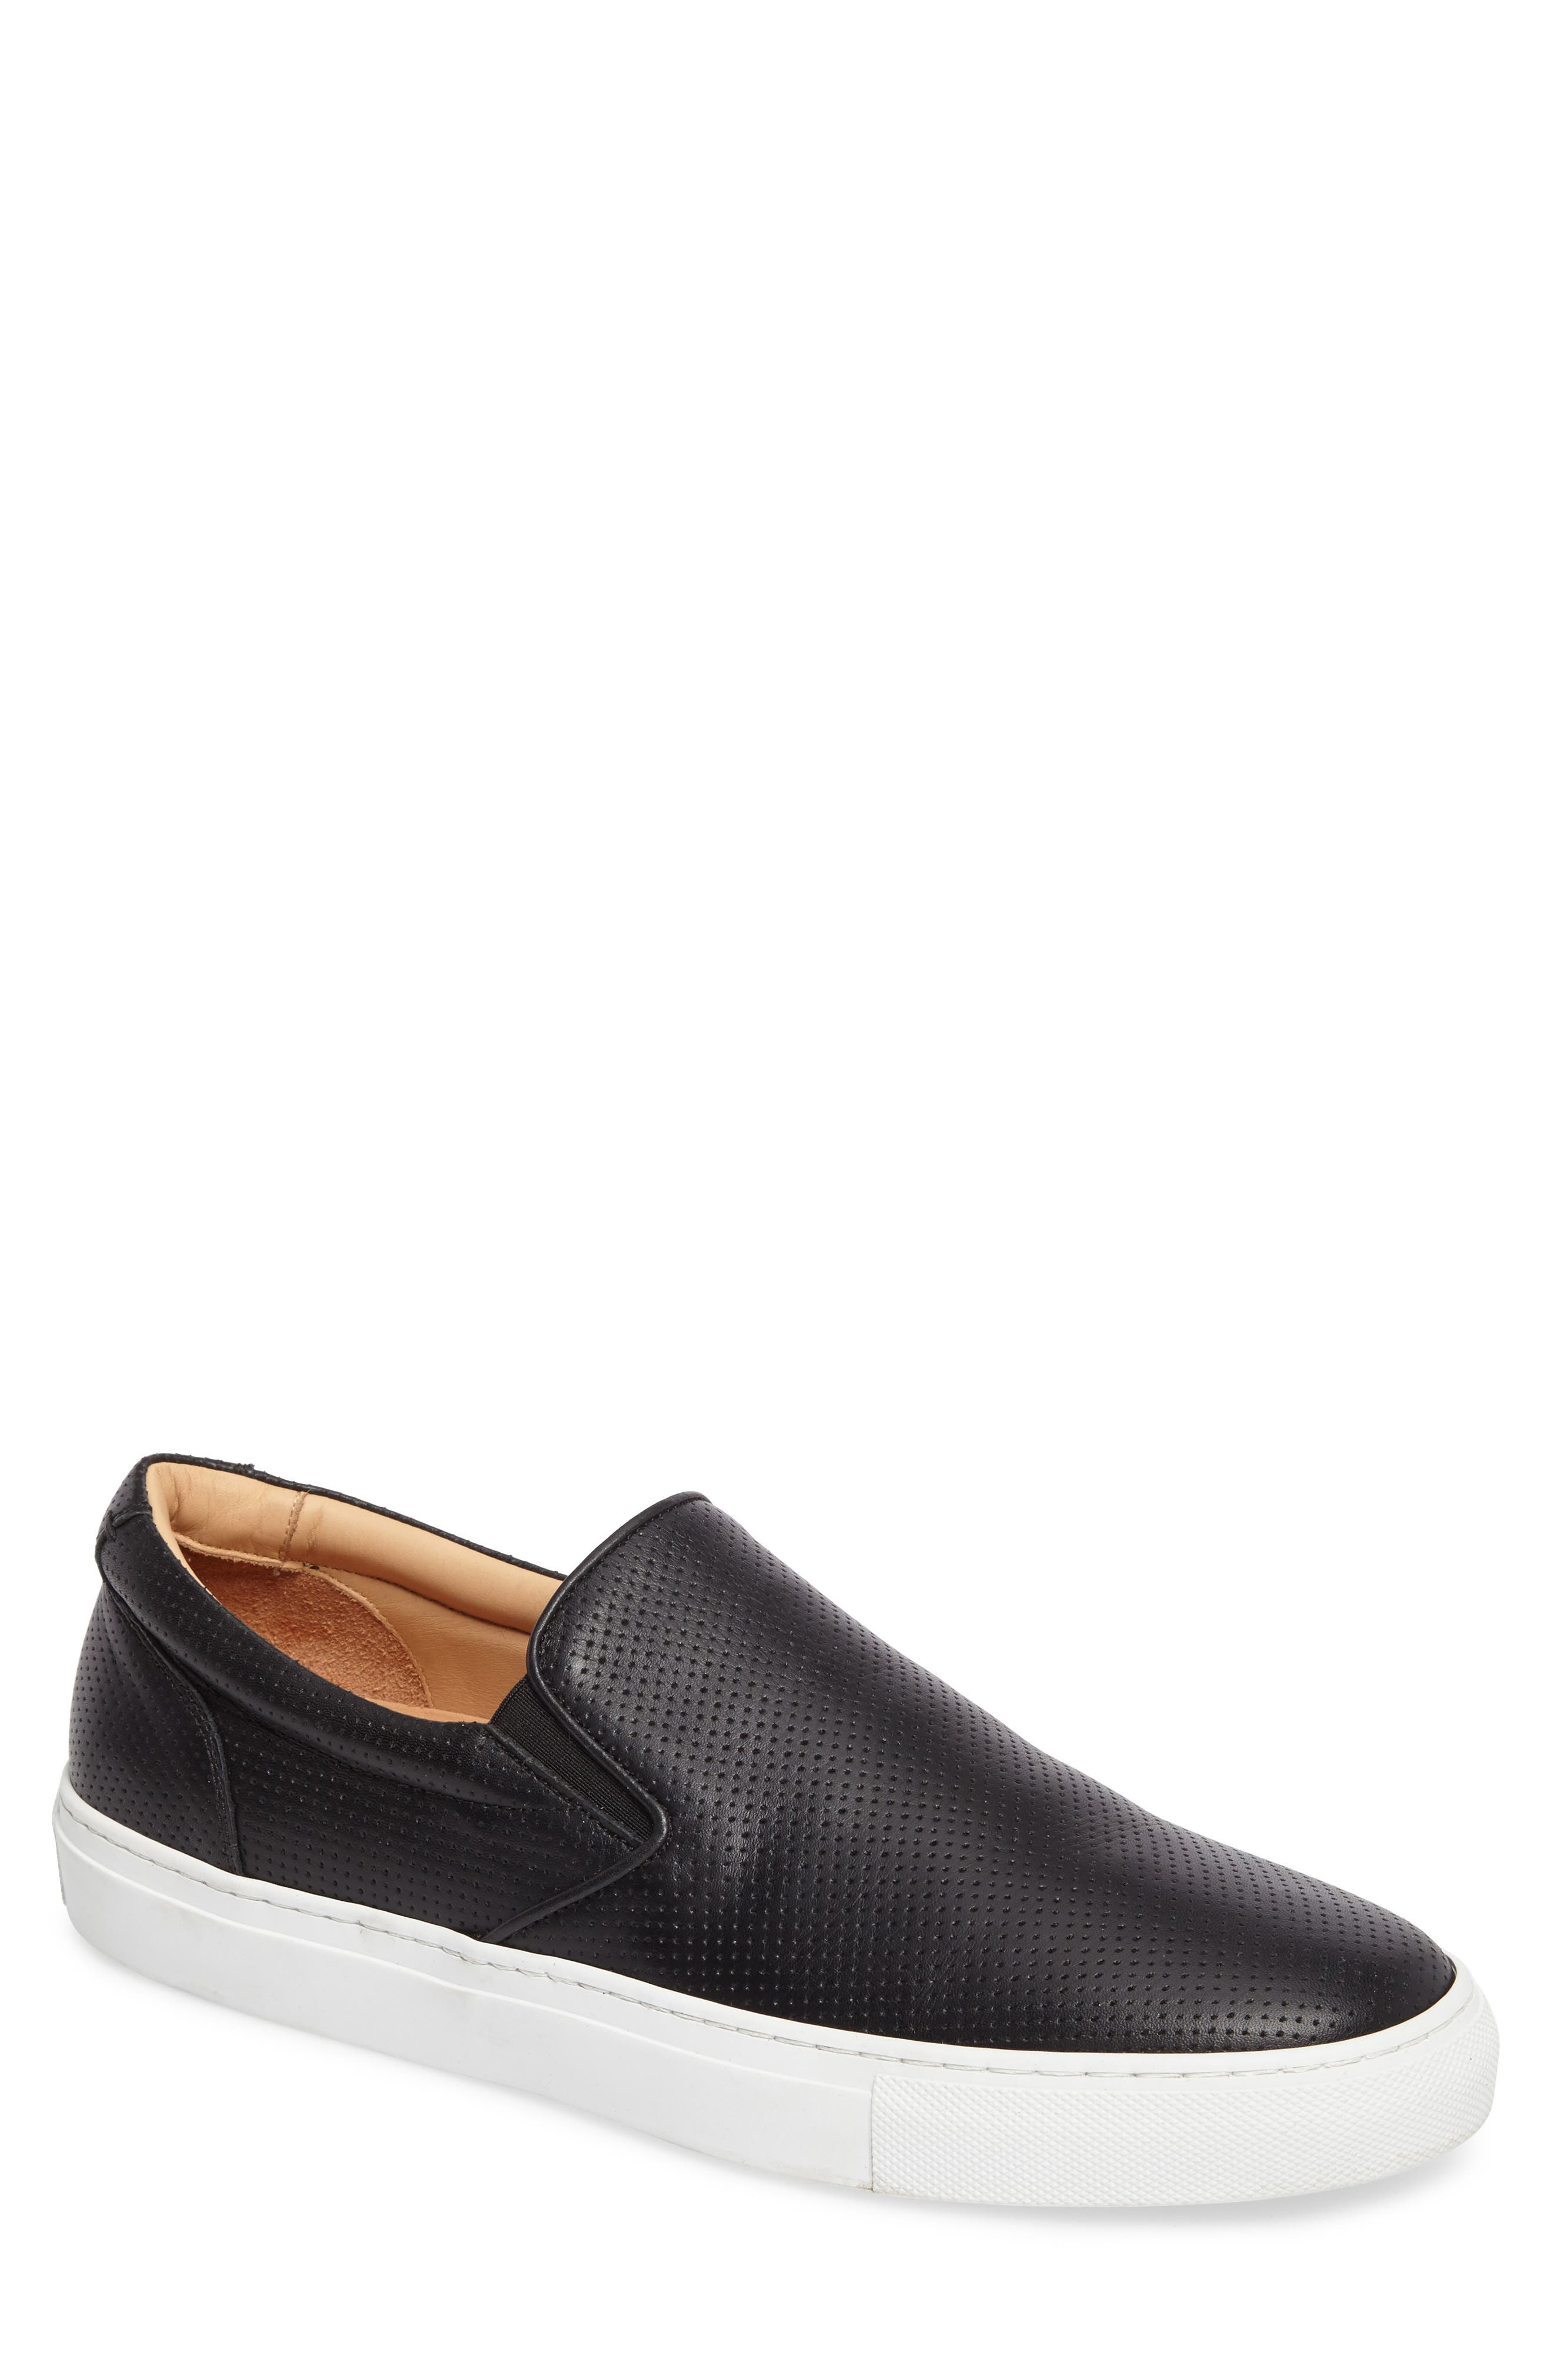 Wooster Slip-On Sneaker,                             Main thumbnail 1, color,                             BLACK PERFORATED LEATHER